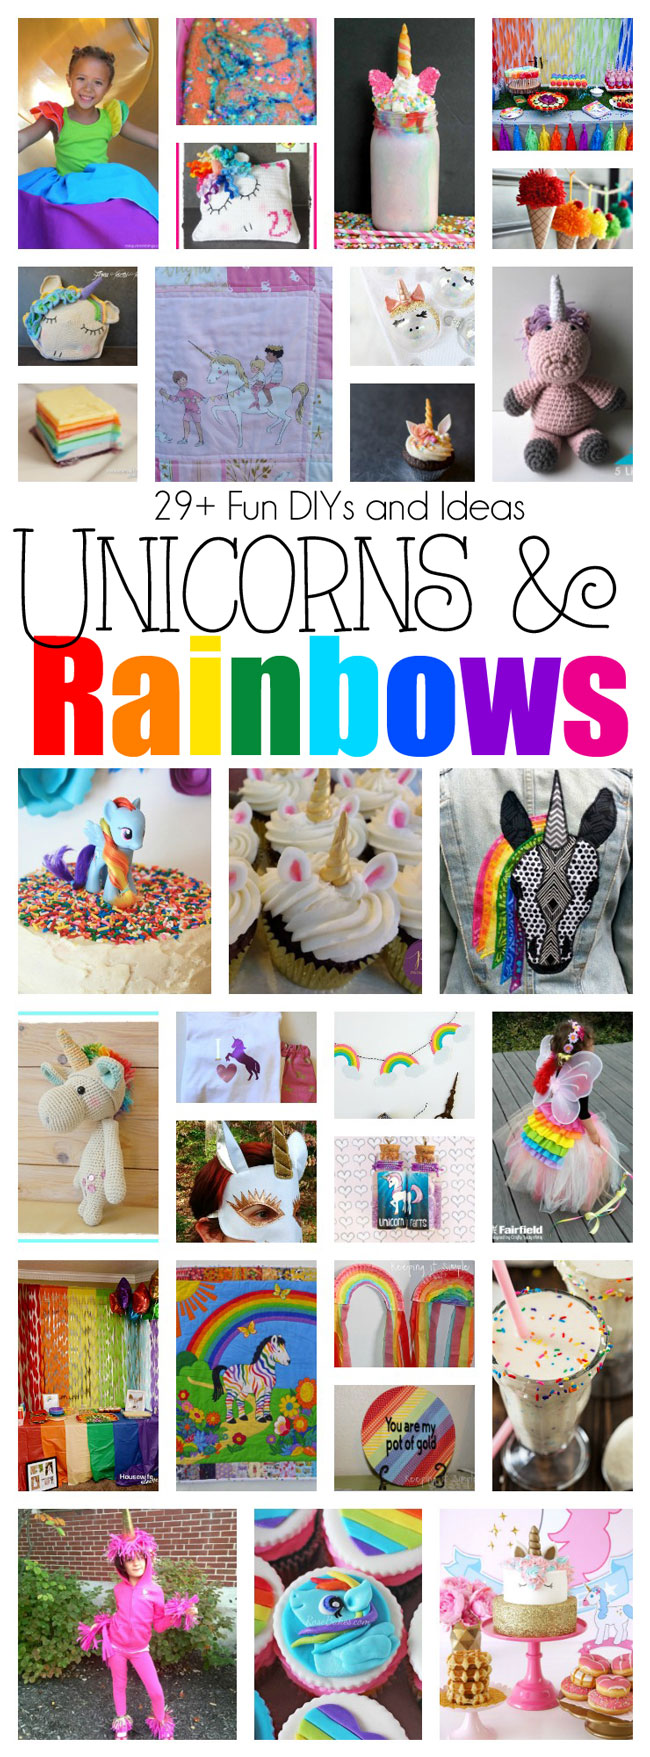 DIY Unicorns Rainbows Crafts and Party ideas